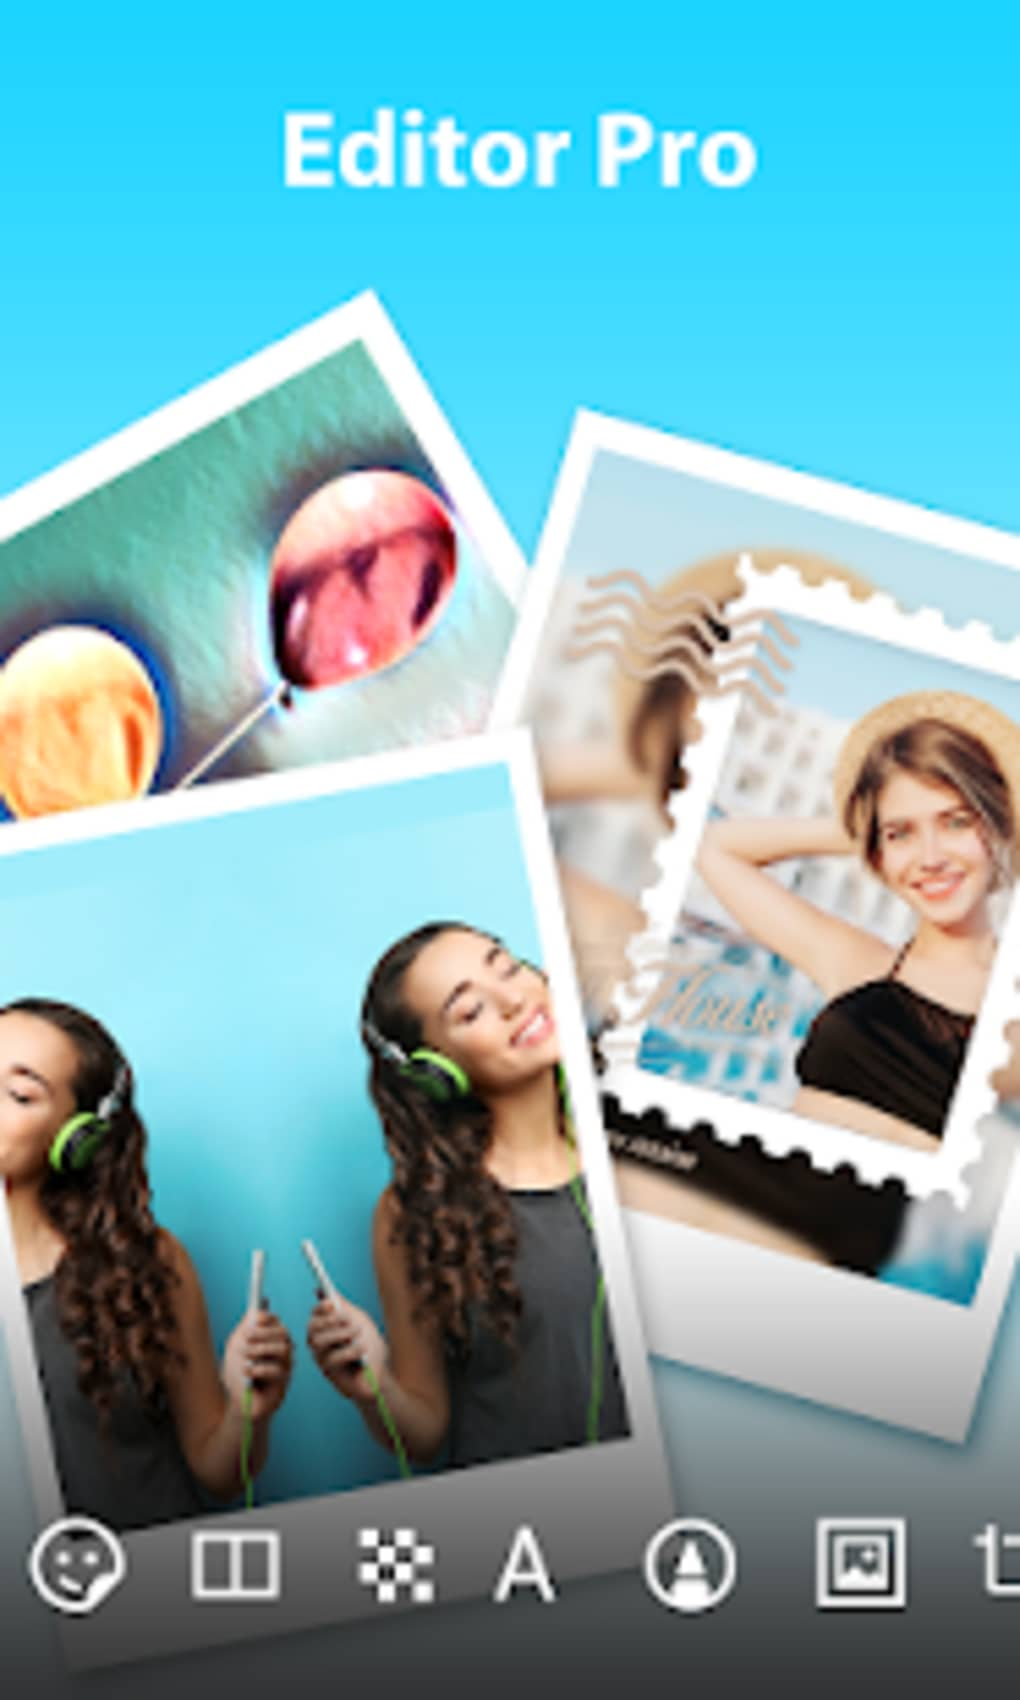 Pizap photo editor collage maker stickers Best collage maker tools for creating photo collages